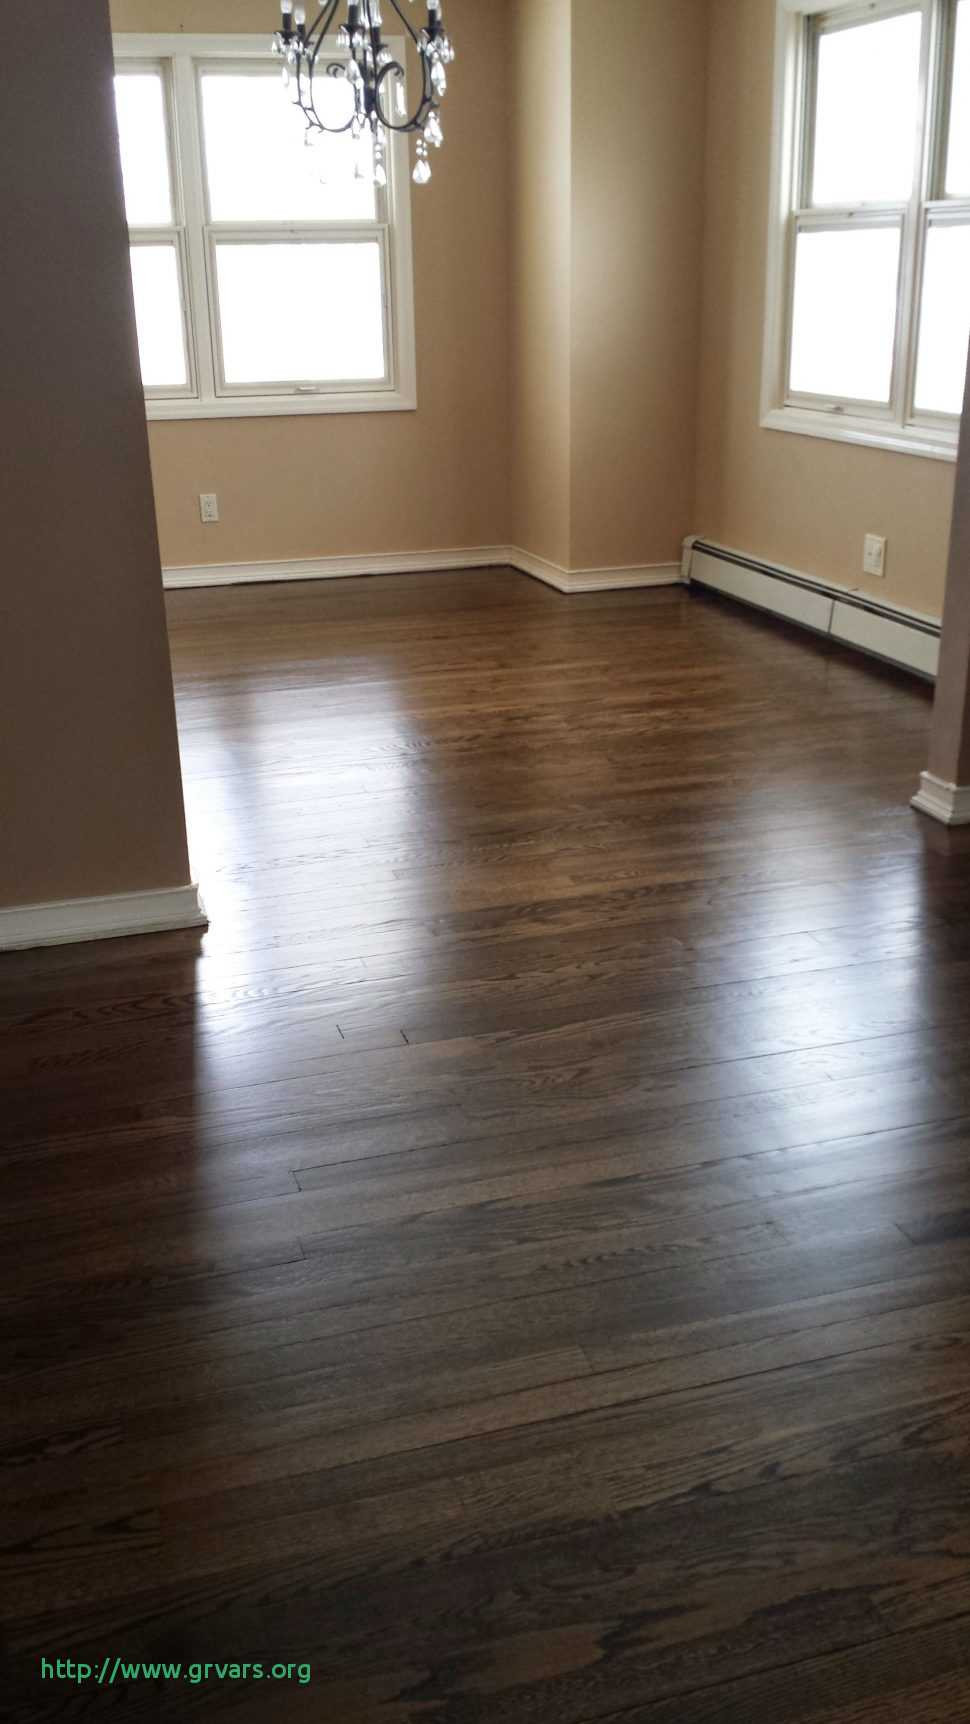 hardwood flooring finishing techniques of replacing laminate flooring with hardwood inspirant great methods to with regard to replacing laminate flooring with hardwood beau amusing refinishingod floors diy network refinish parquet without